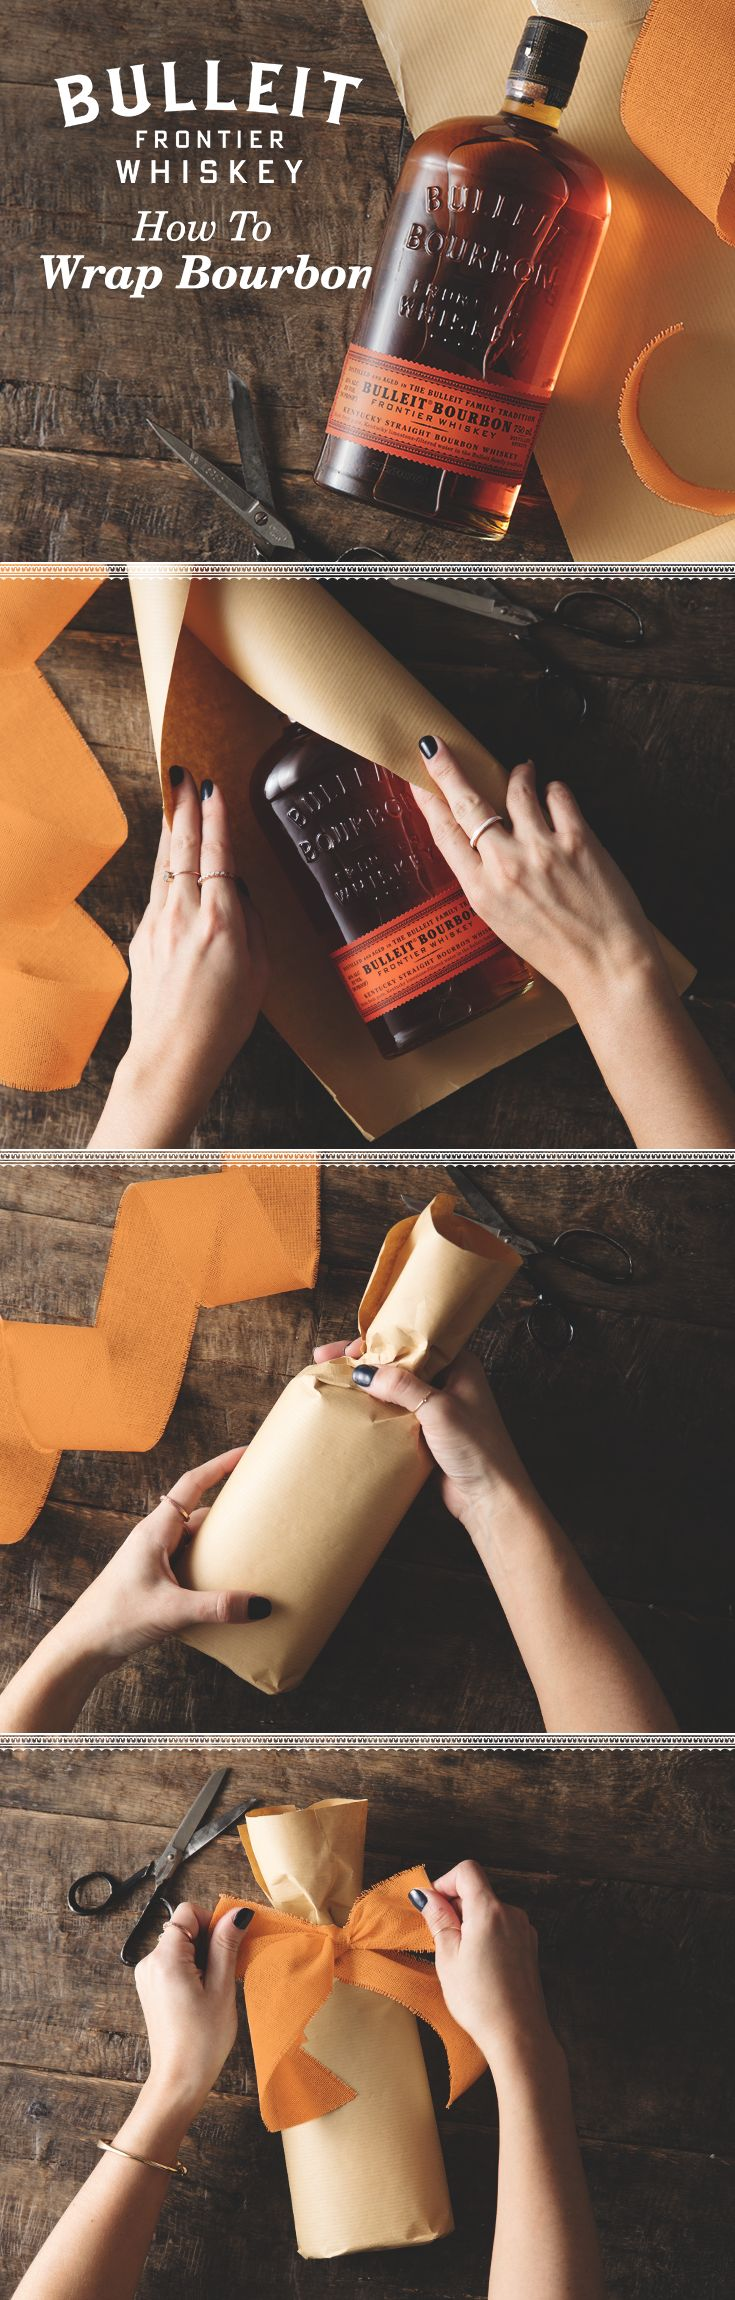 A bottle of Bulleit Bourbon is the perfect gift for any whiskey lover. For a quick and easy way to wrap the whiskey, attach a bow or place it in a gift bag. Otherwise, you can wrap the uniquely shaped bottle for an extra special present. First, put the bottle on a sheet of wrapping paper with additional space on each side. Then, fold over the sides and tape them together. Twist the paper around the top of the bottle and place another piece of tape. Last, attach a bow or tag to the top, so it…